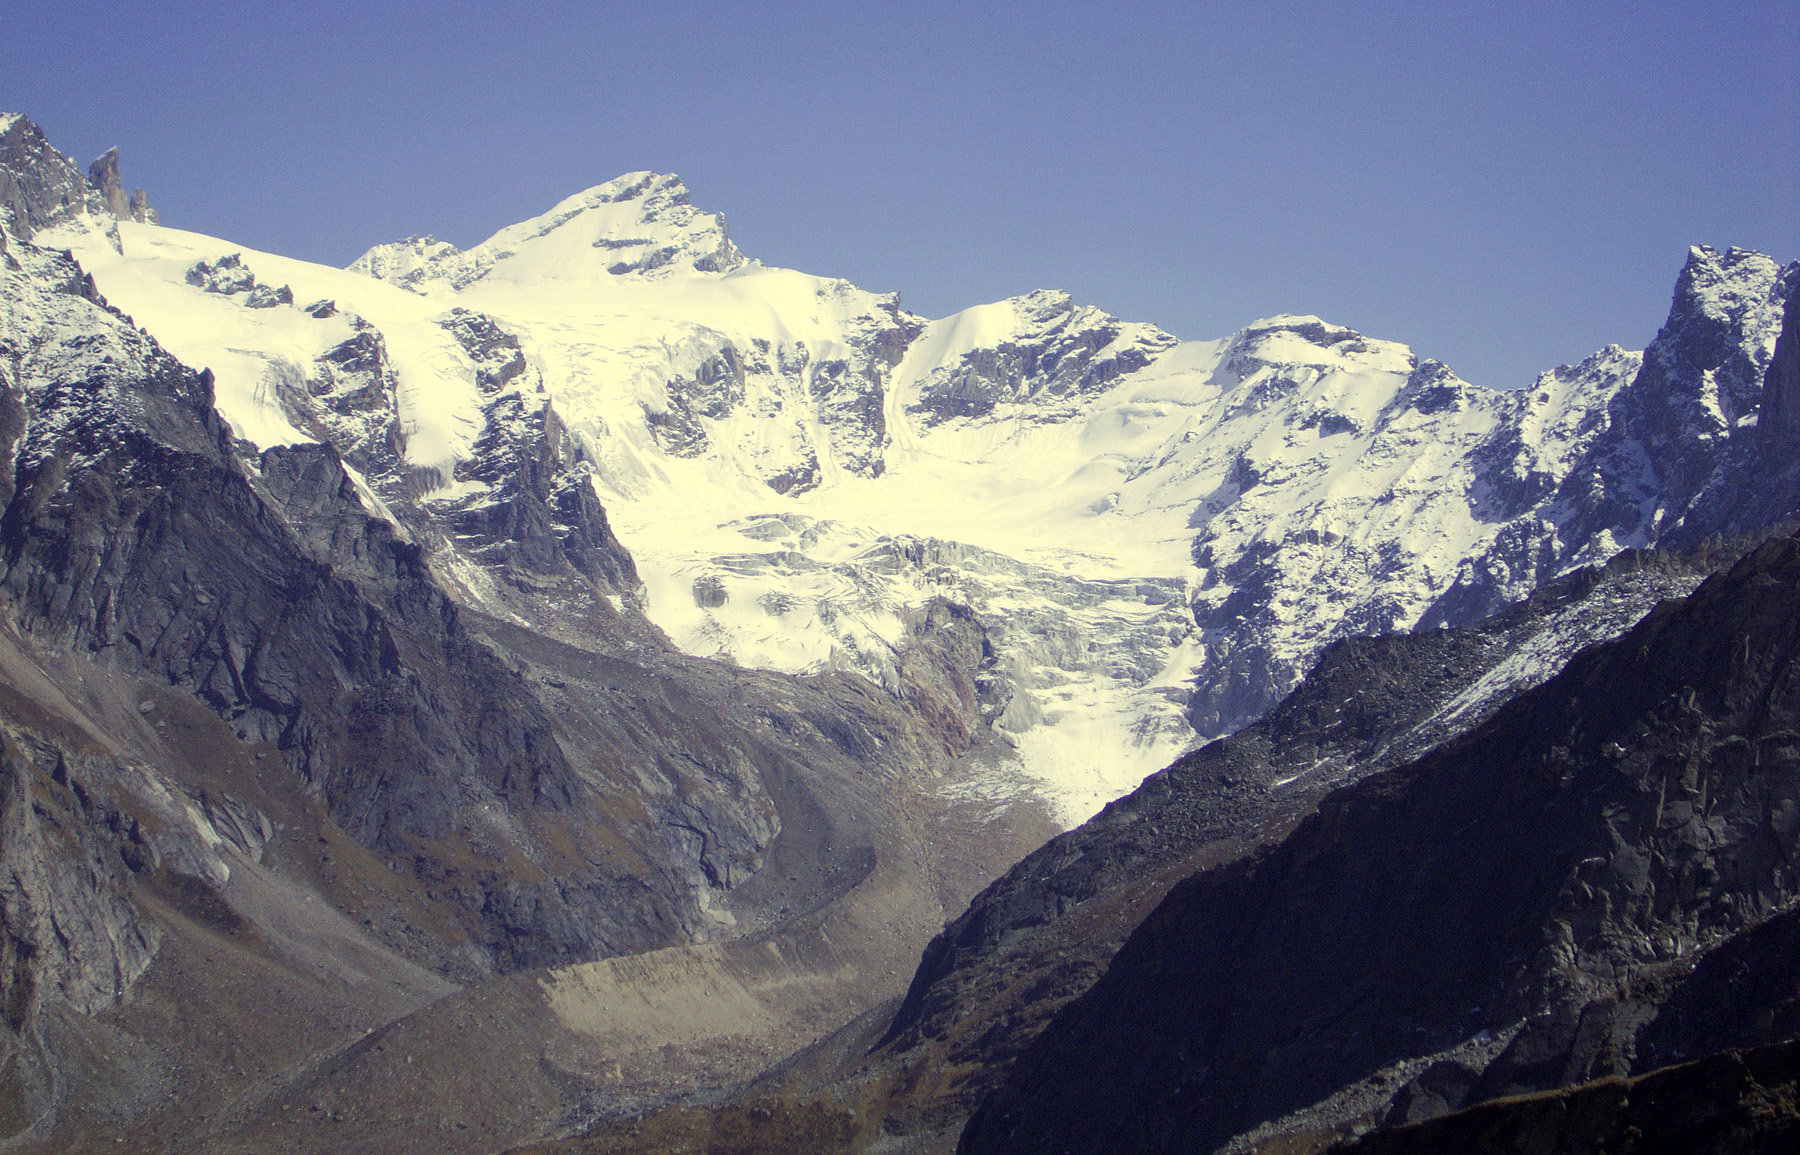 The glacial cirque at the head of Jiwa Valley. The high peak left of center is Pt 5,445m. Snow Leopard Peak is just out of frame to the left. Derek Buckle